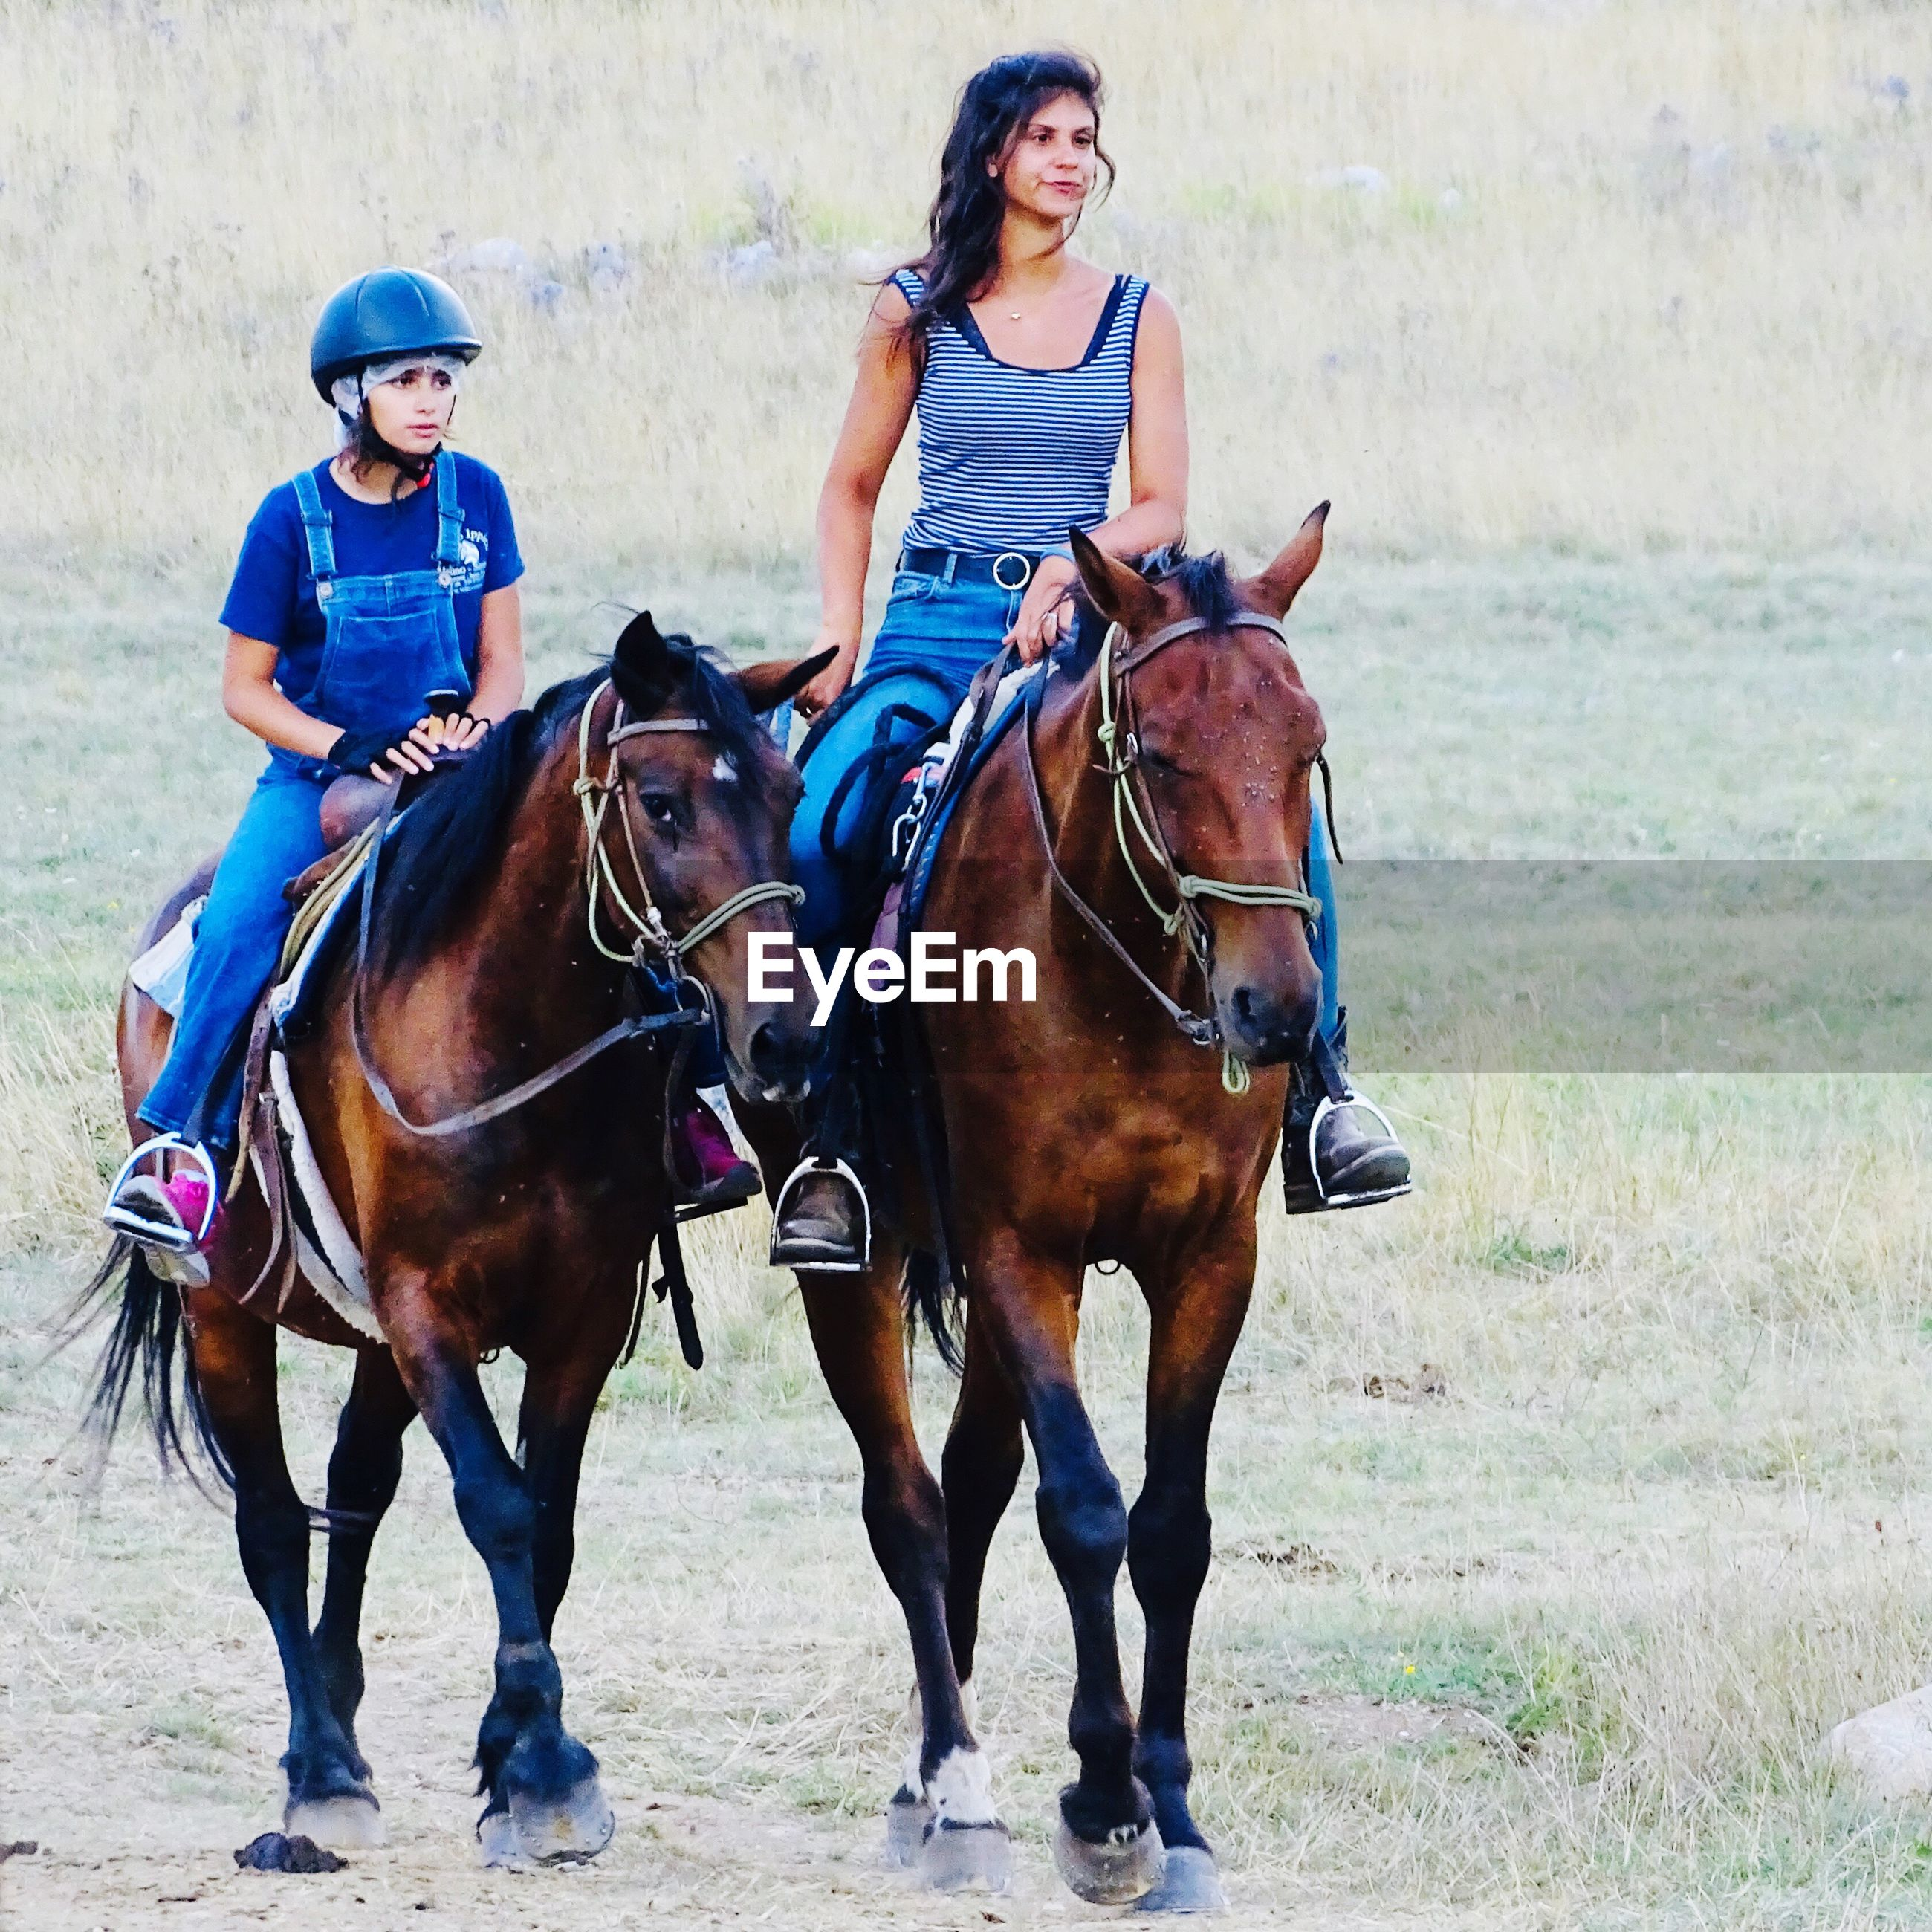 SIDE VIEW OF HORSE RIDING